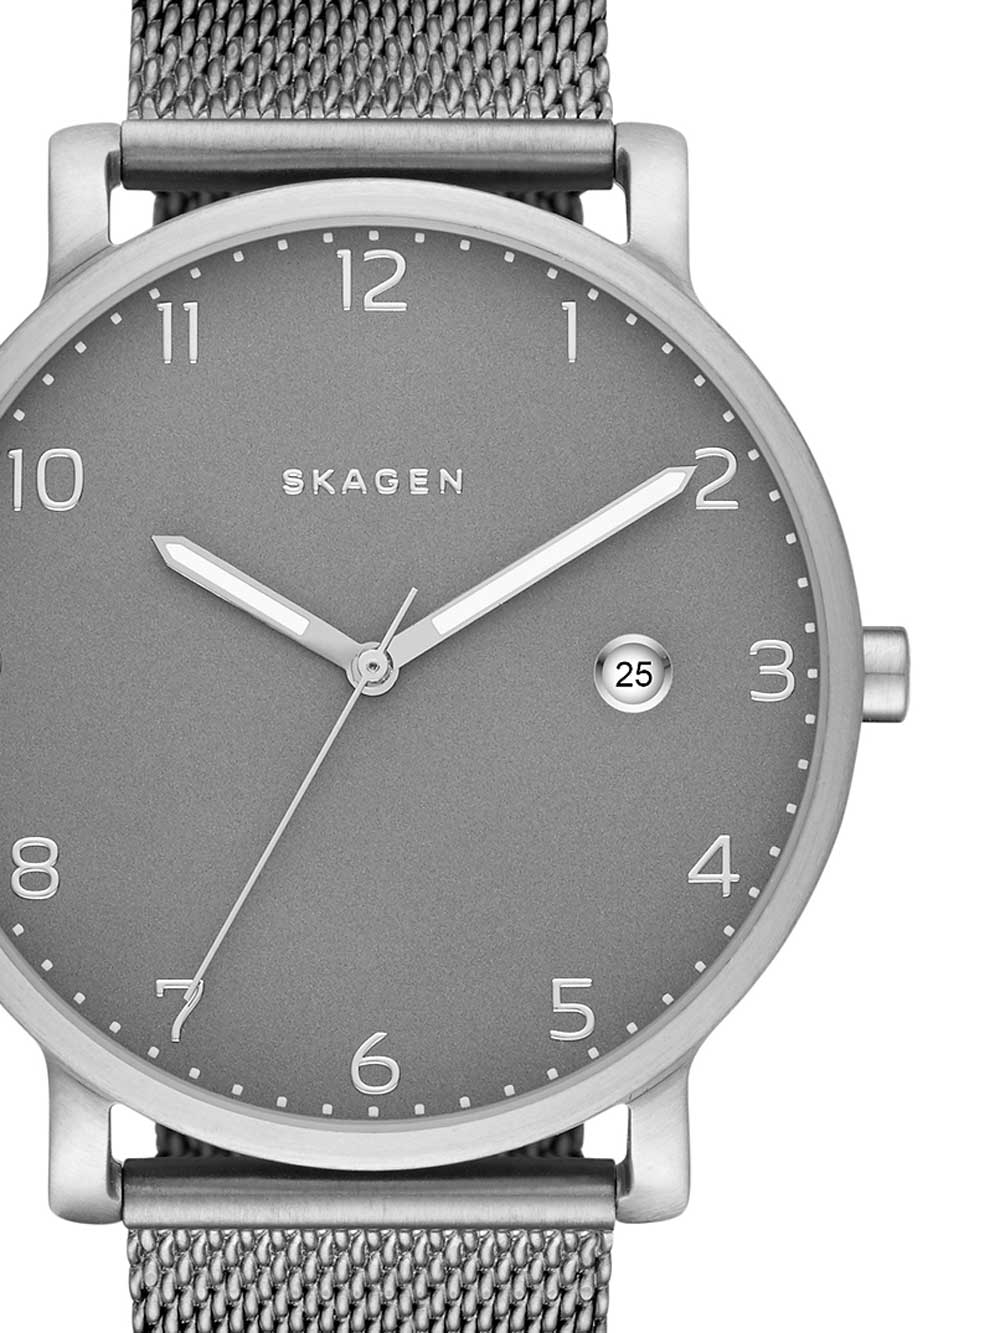 Image of Herrenuhr Skagen Grau